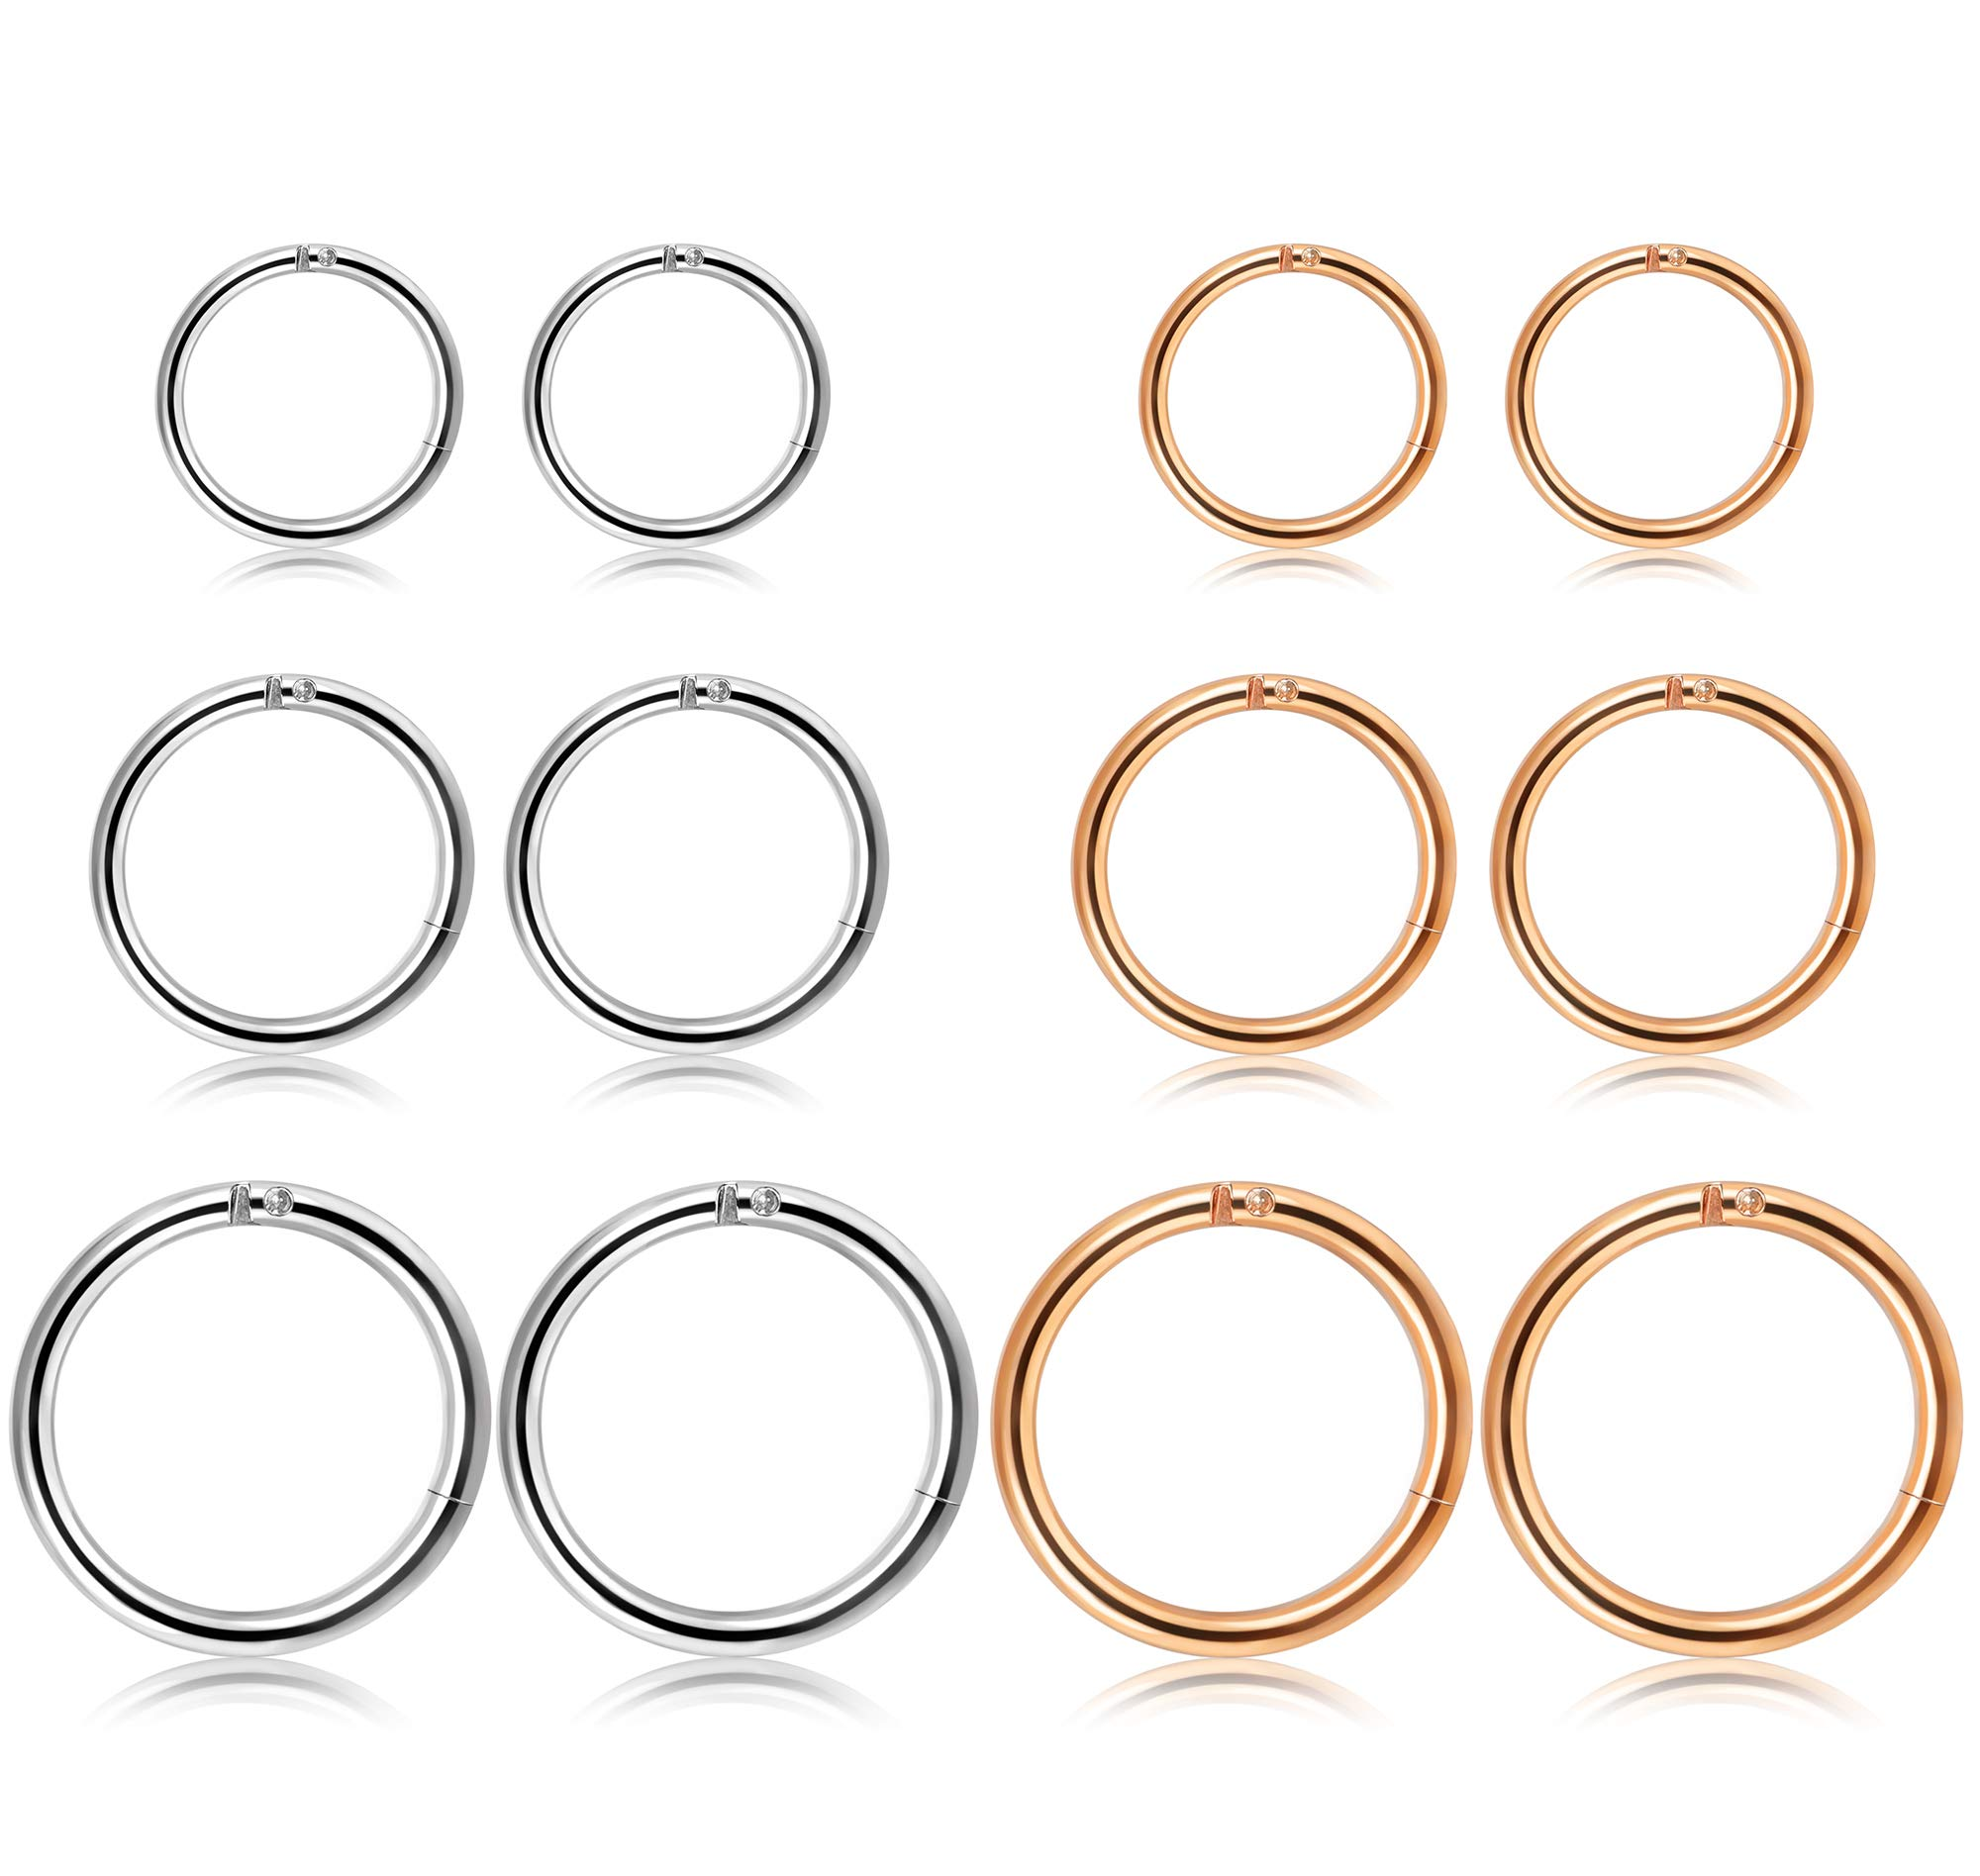 Jstyle 12Pcs 16G Surgical Steel Hinged Clicker Segment Nose Rings Hoop Helix Cartilage Daith Tragus Sleeper Earrings Body Piercing 8-12MM Improved by Jstyle